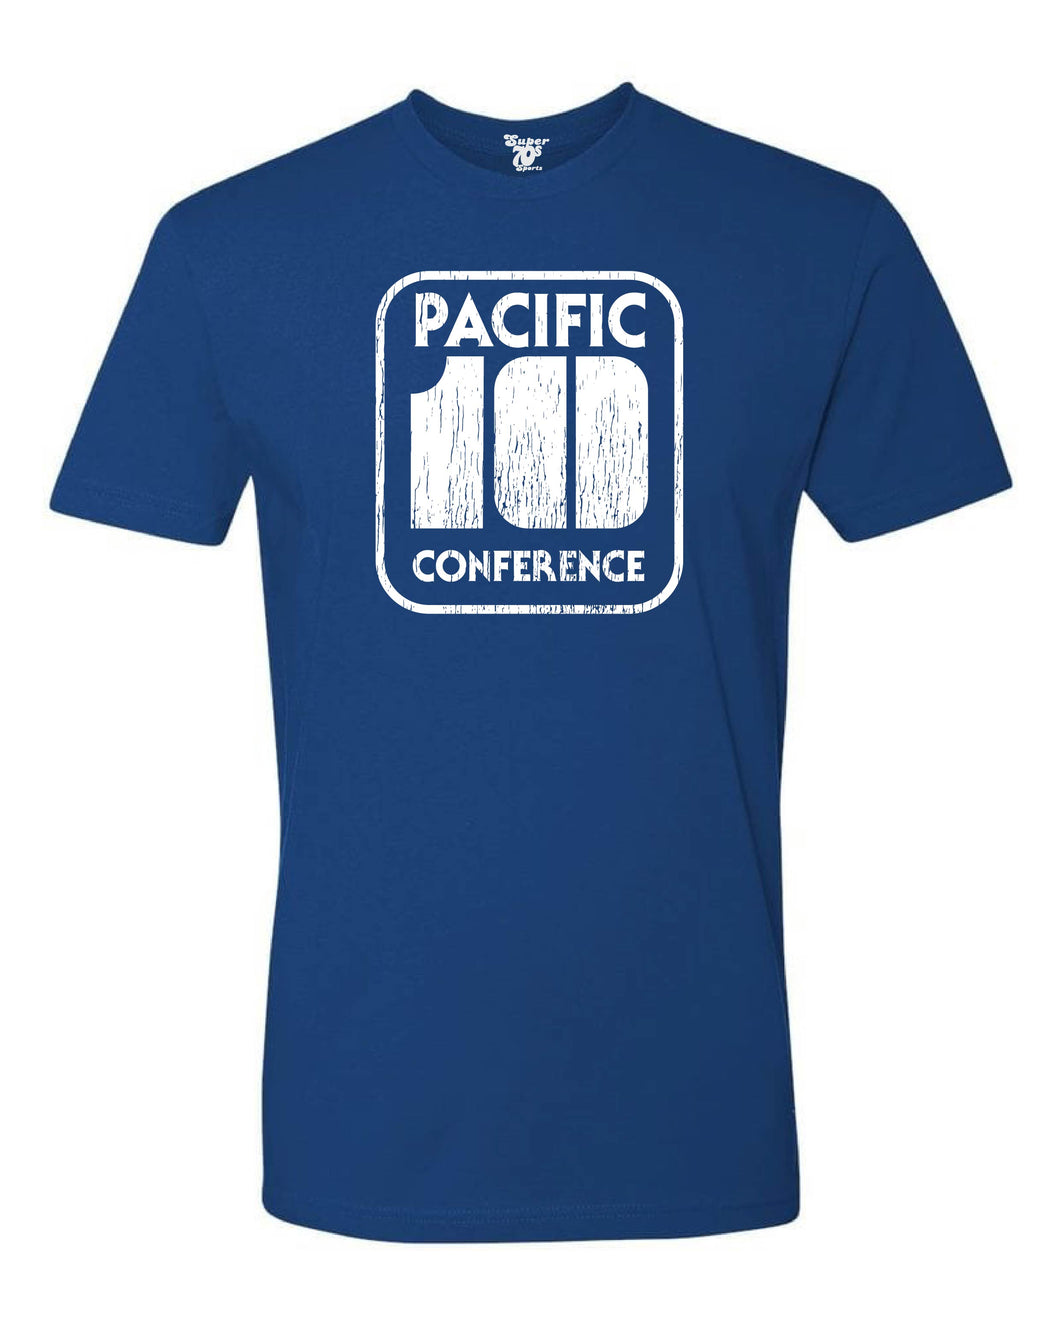 Pacific 10 Conference Tee